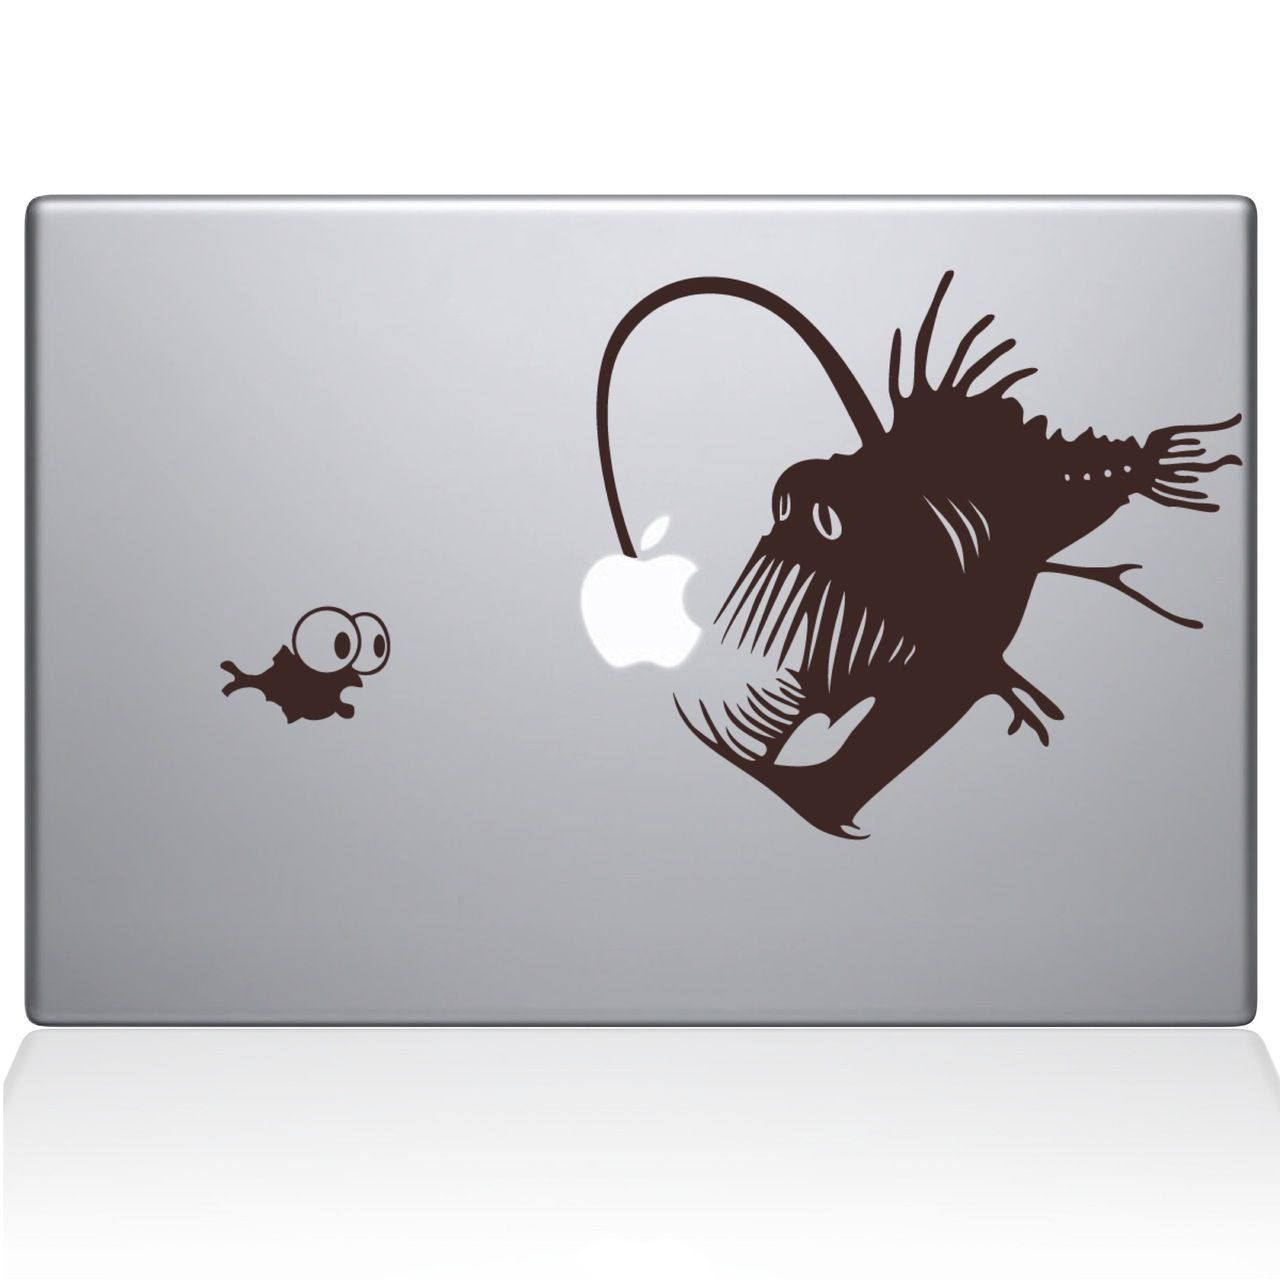 Little nemo macbook decals the decal guru